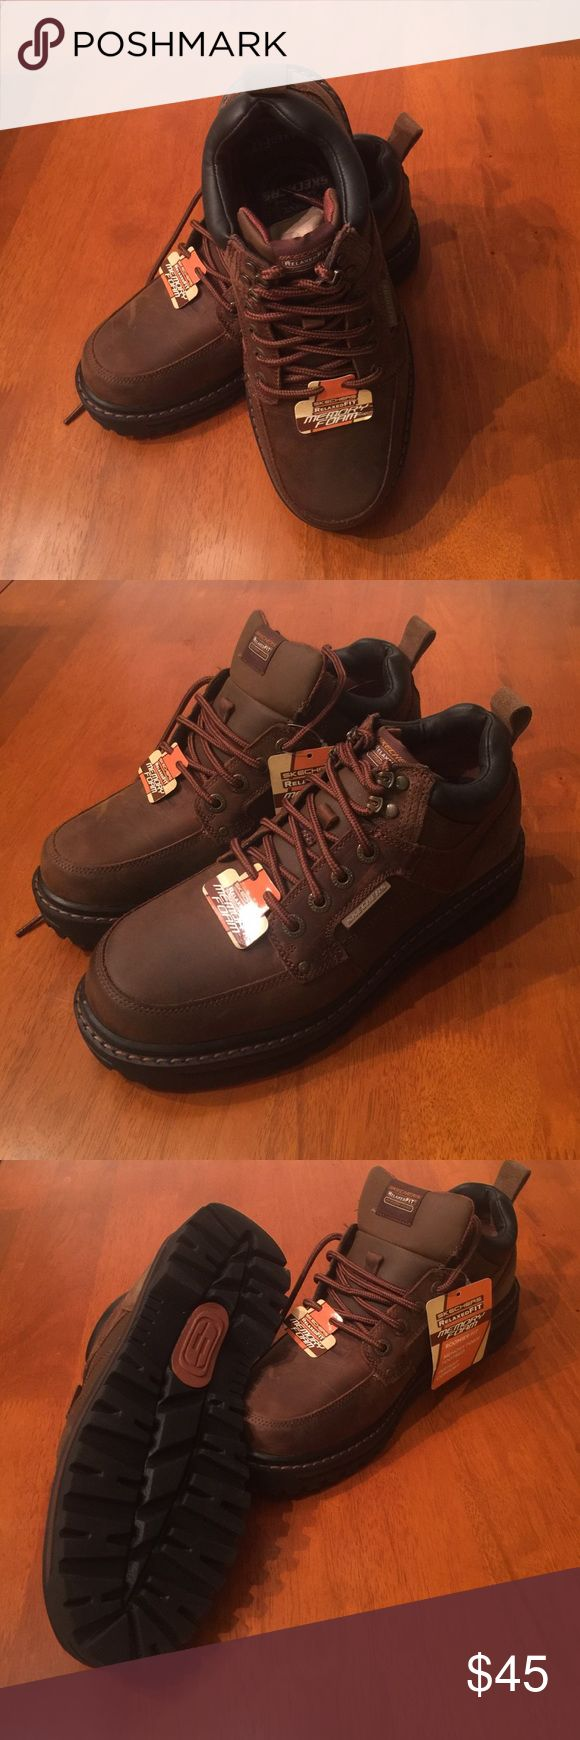 Sketchers Men's Leather Hiking Shoes Size 8 Sketchers men's hiking low rise hiking boots.  Color is dark brown.  Size 8. These memory foam insole boots are very comfortable and relaxed fit. Skechers Shoes Boots